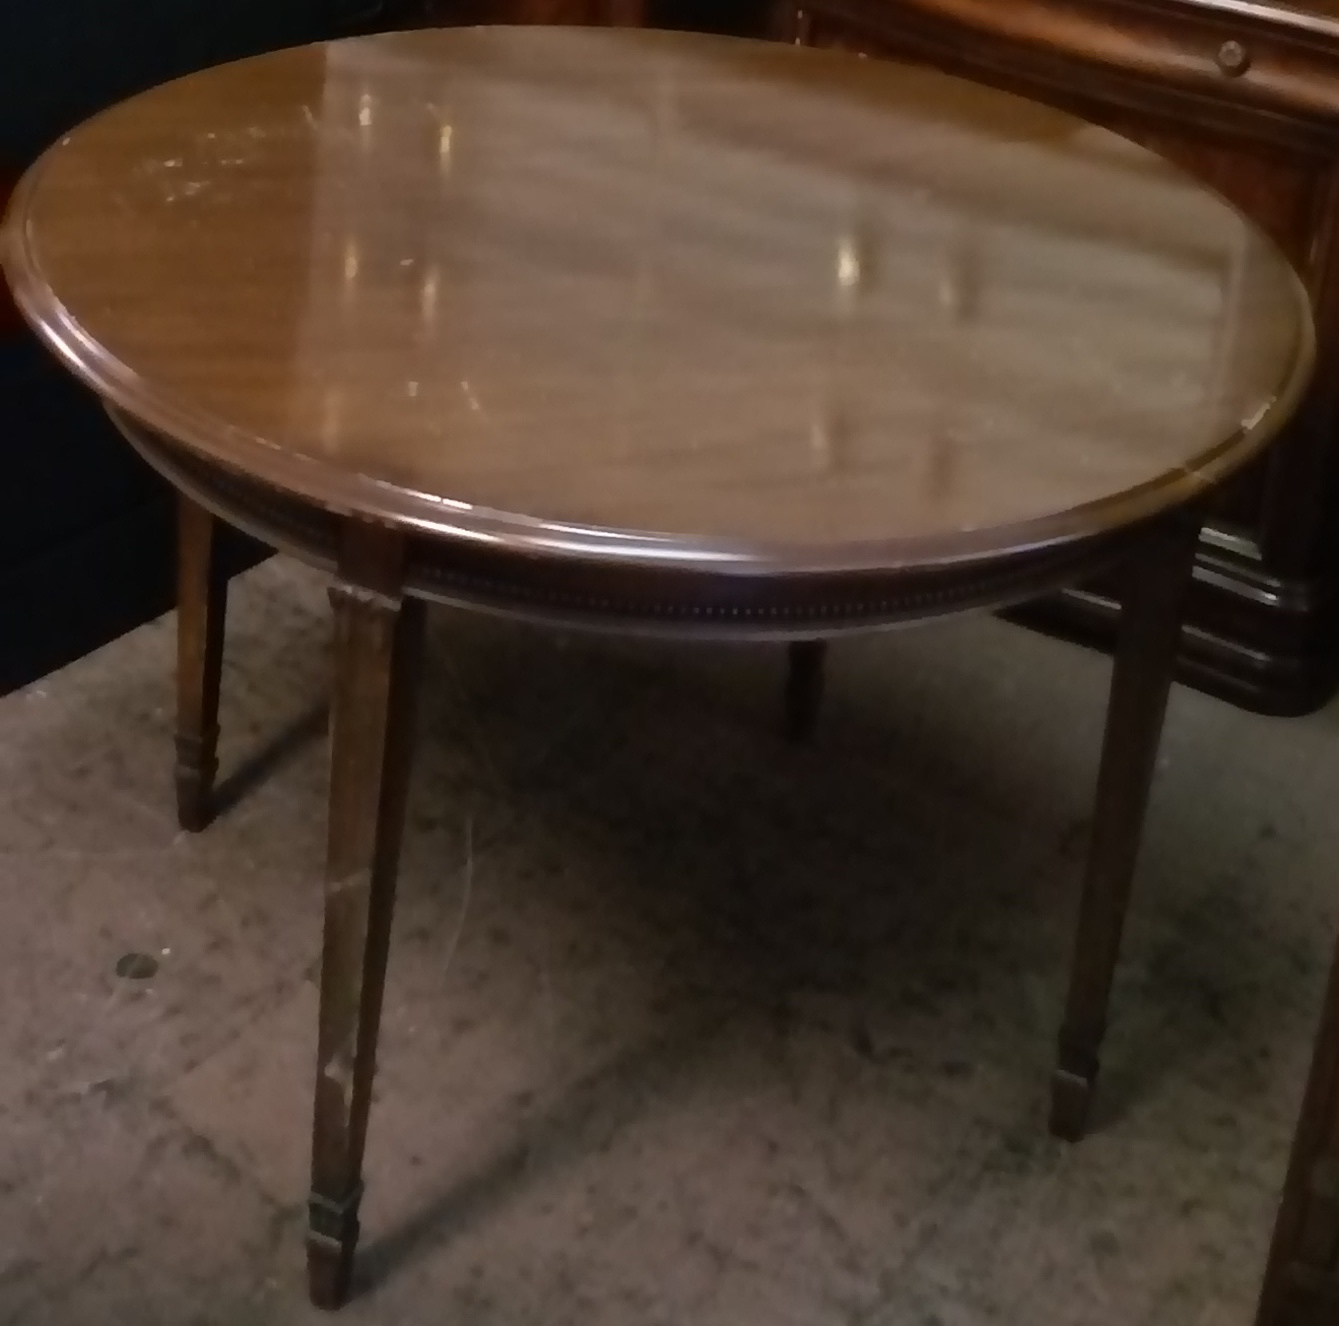 Uhuru furniture collectibles sold reduced 40 diameter dining table 30 - Inch diameter dining table ...